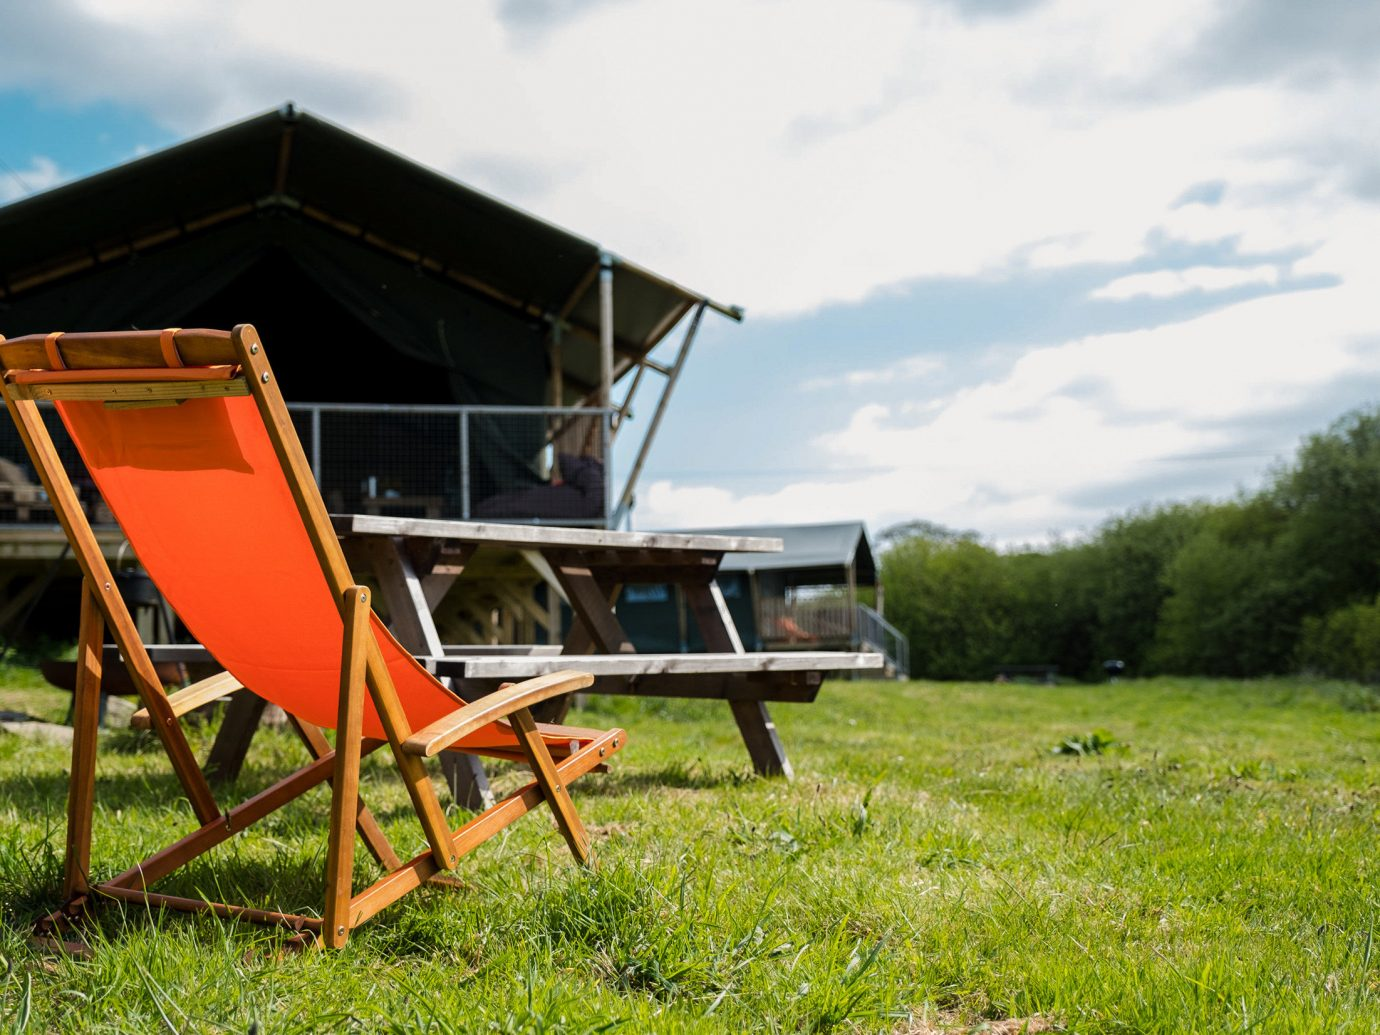 Glamping Outdoors + Adventure Trip Ideas grass sky outdoor plant field rural area tree house meadow landscape chair Farm leisure tent recreation lawn seat